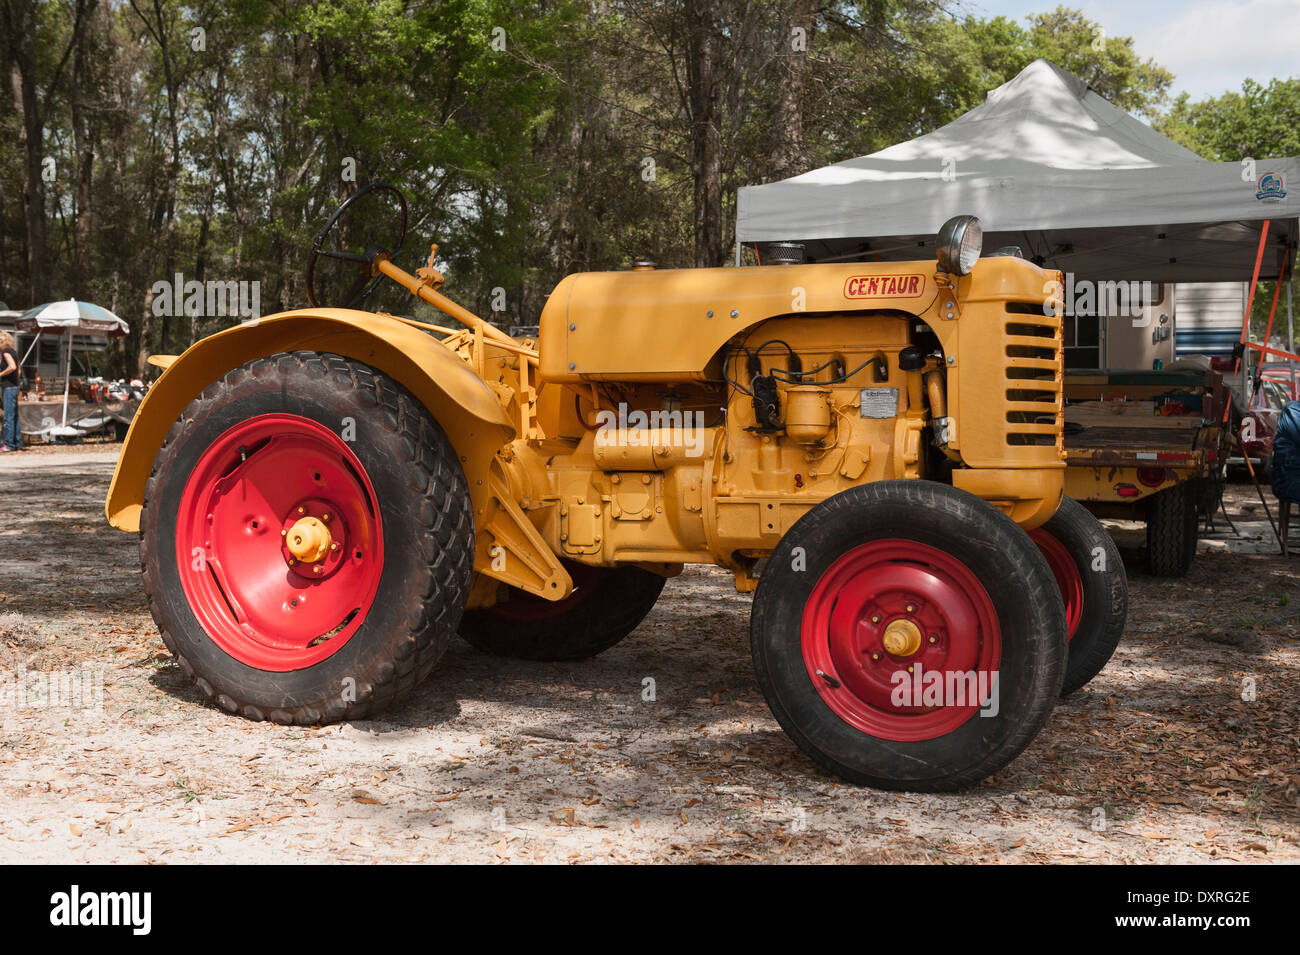 An old antique Centaur tractor - Stock Image